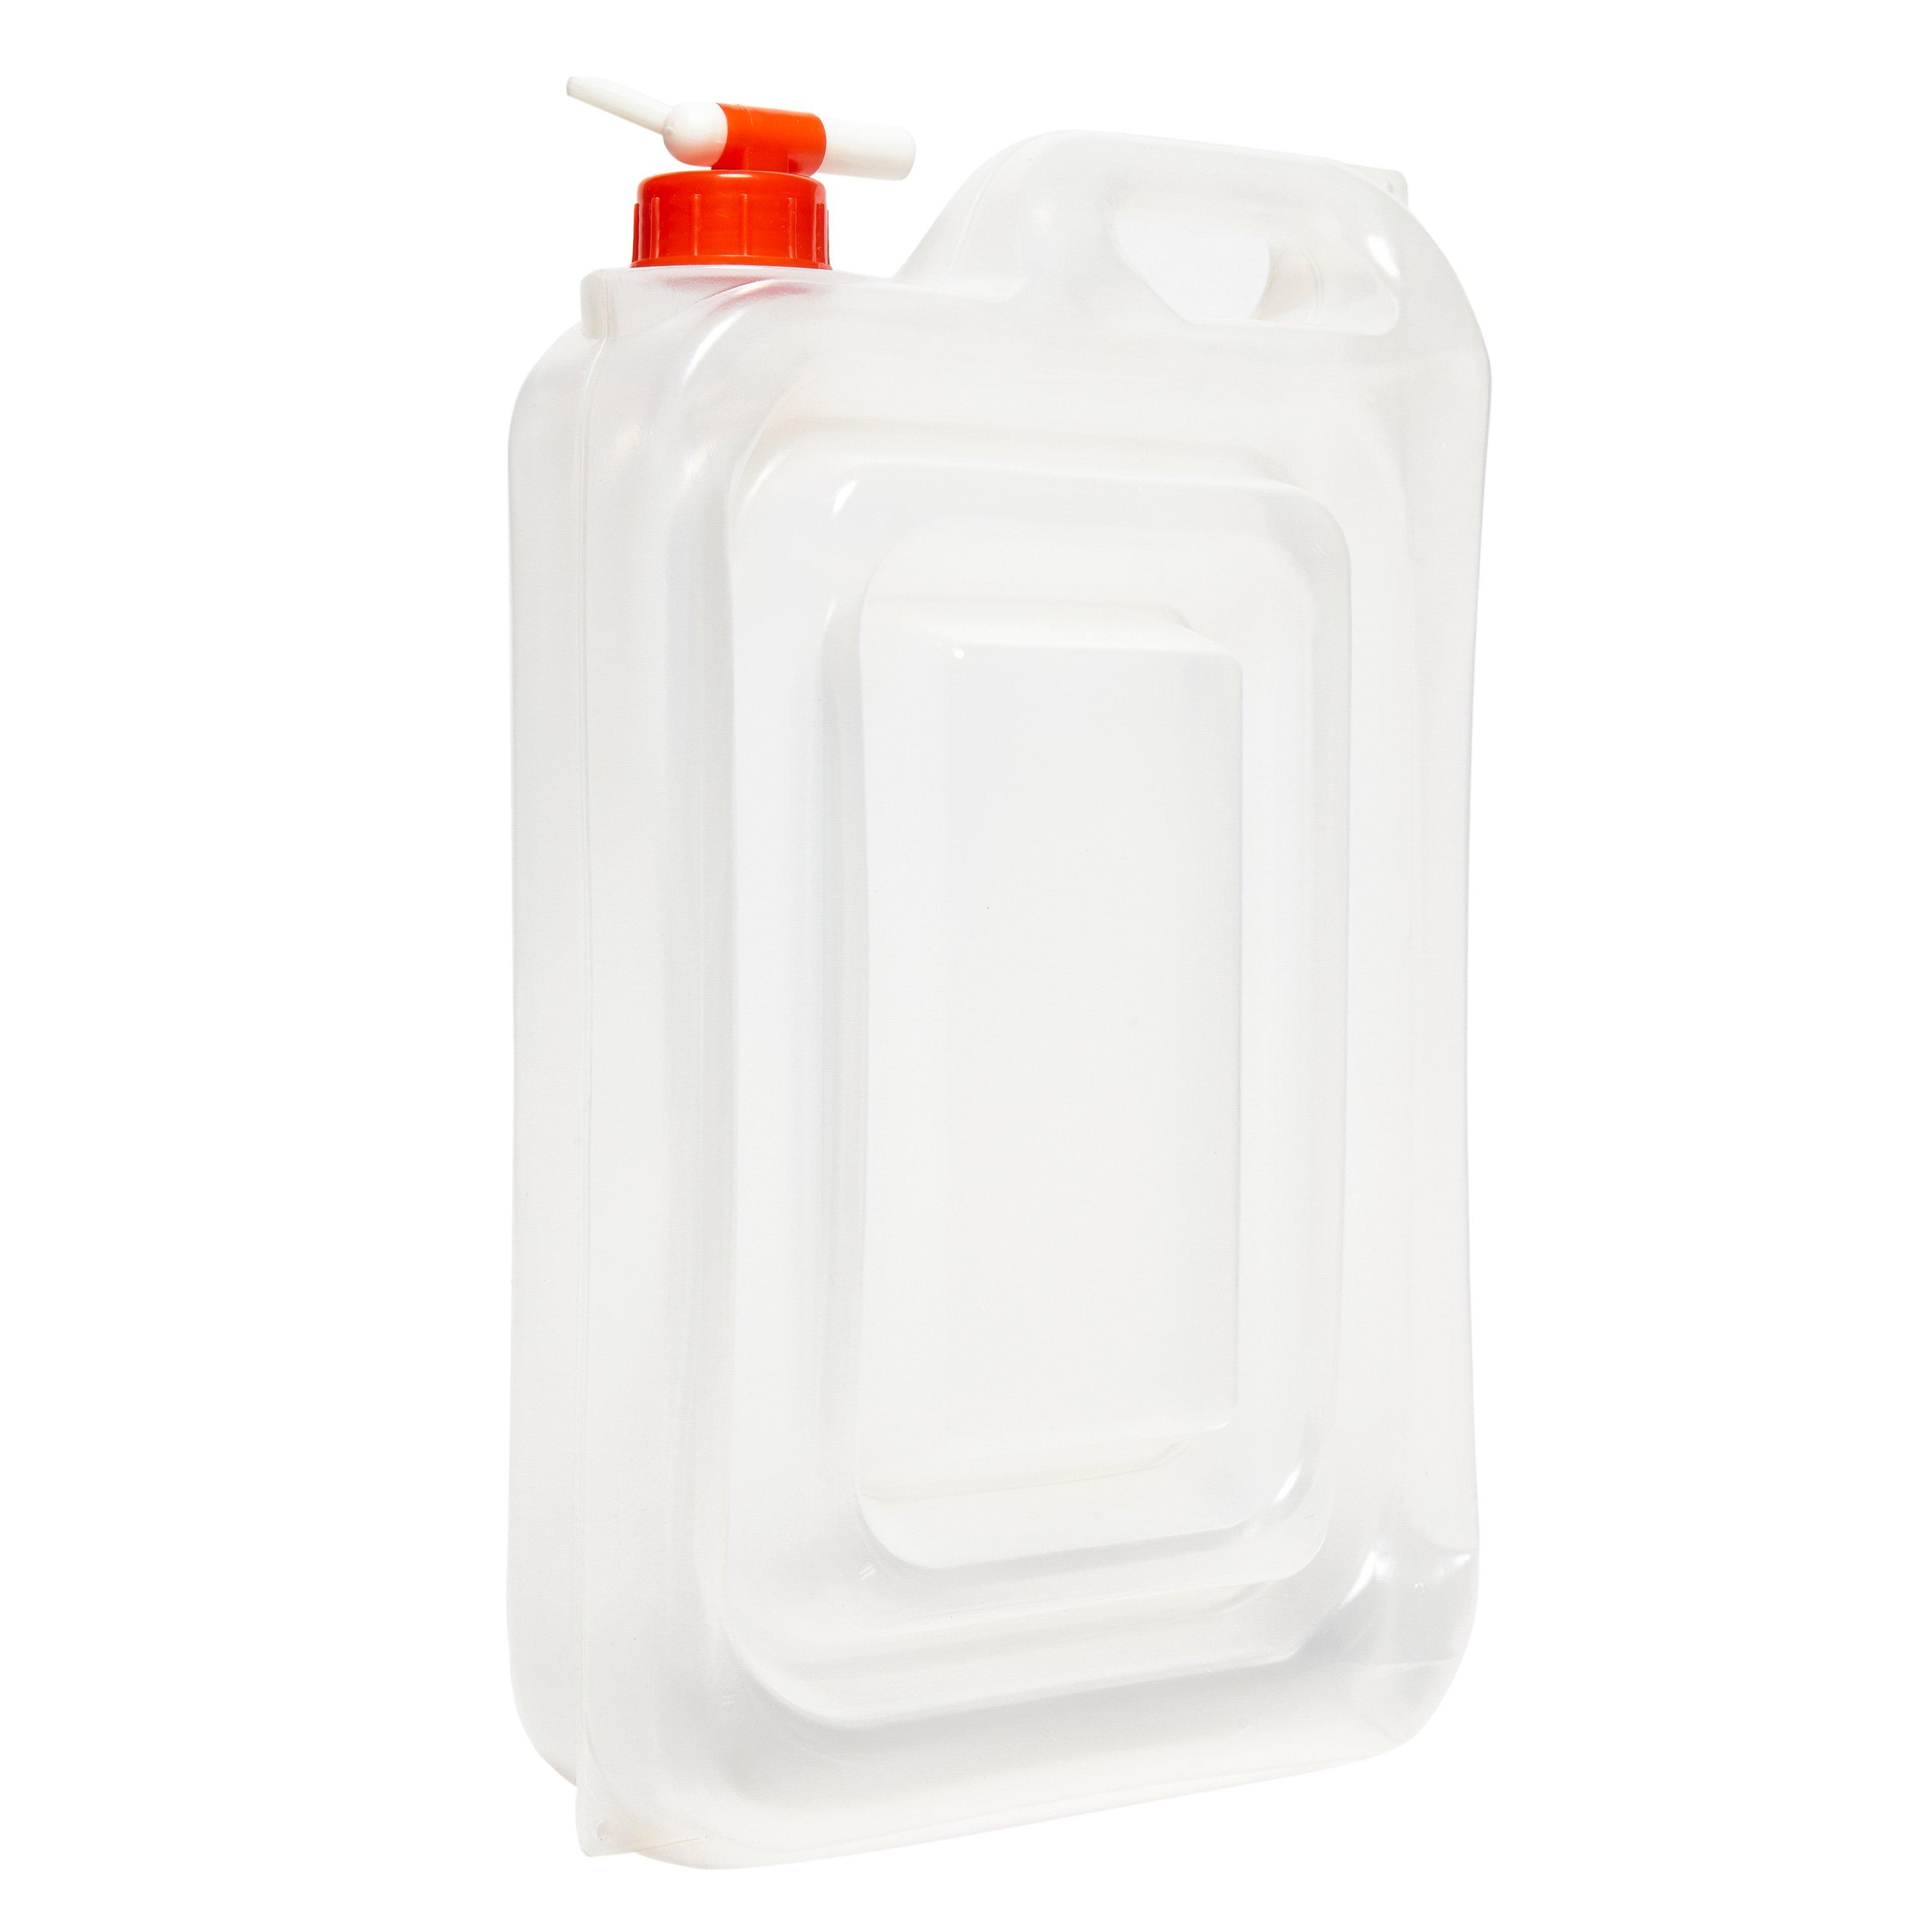 Vango Vango Expandable 12L Water Carrier - Clear, Clear